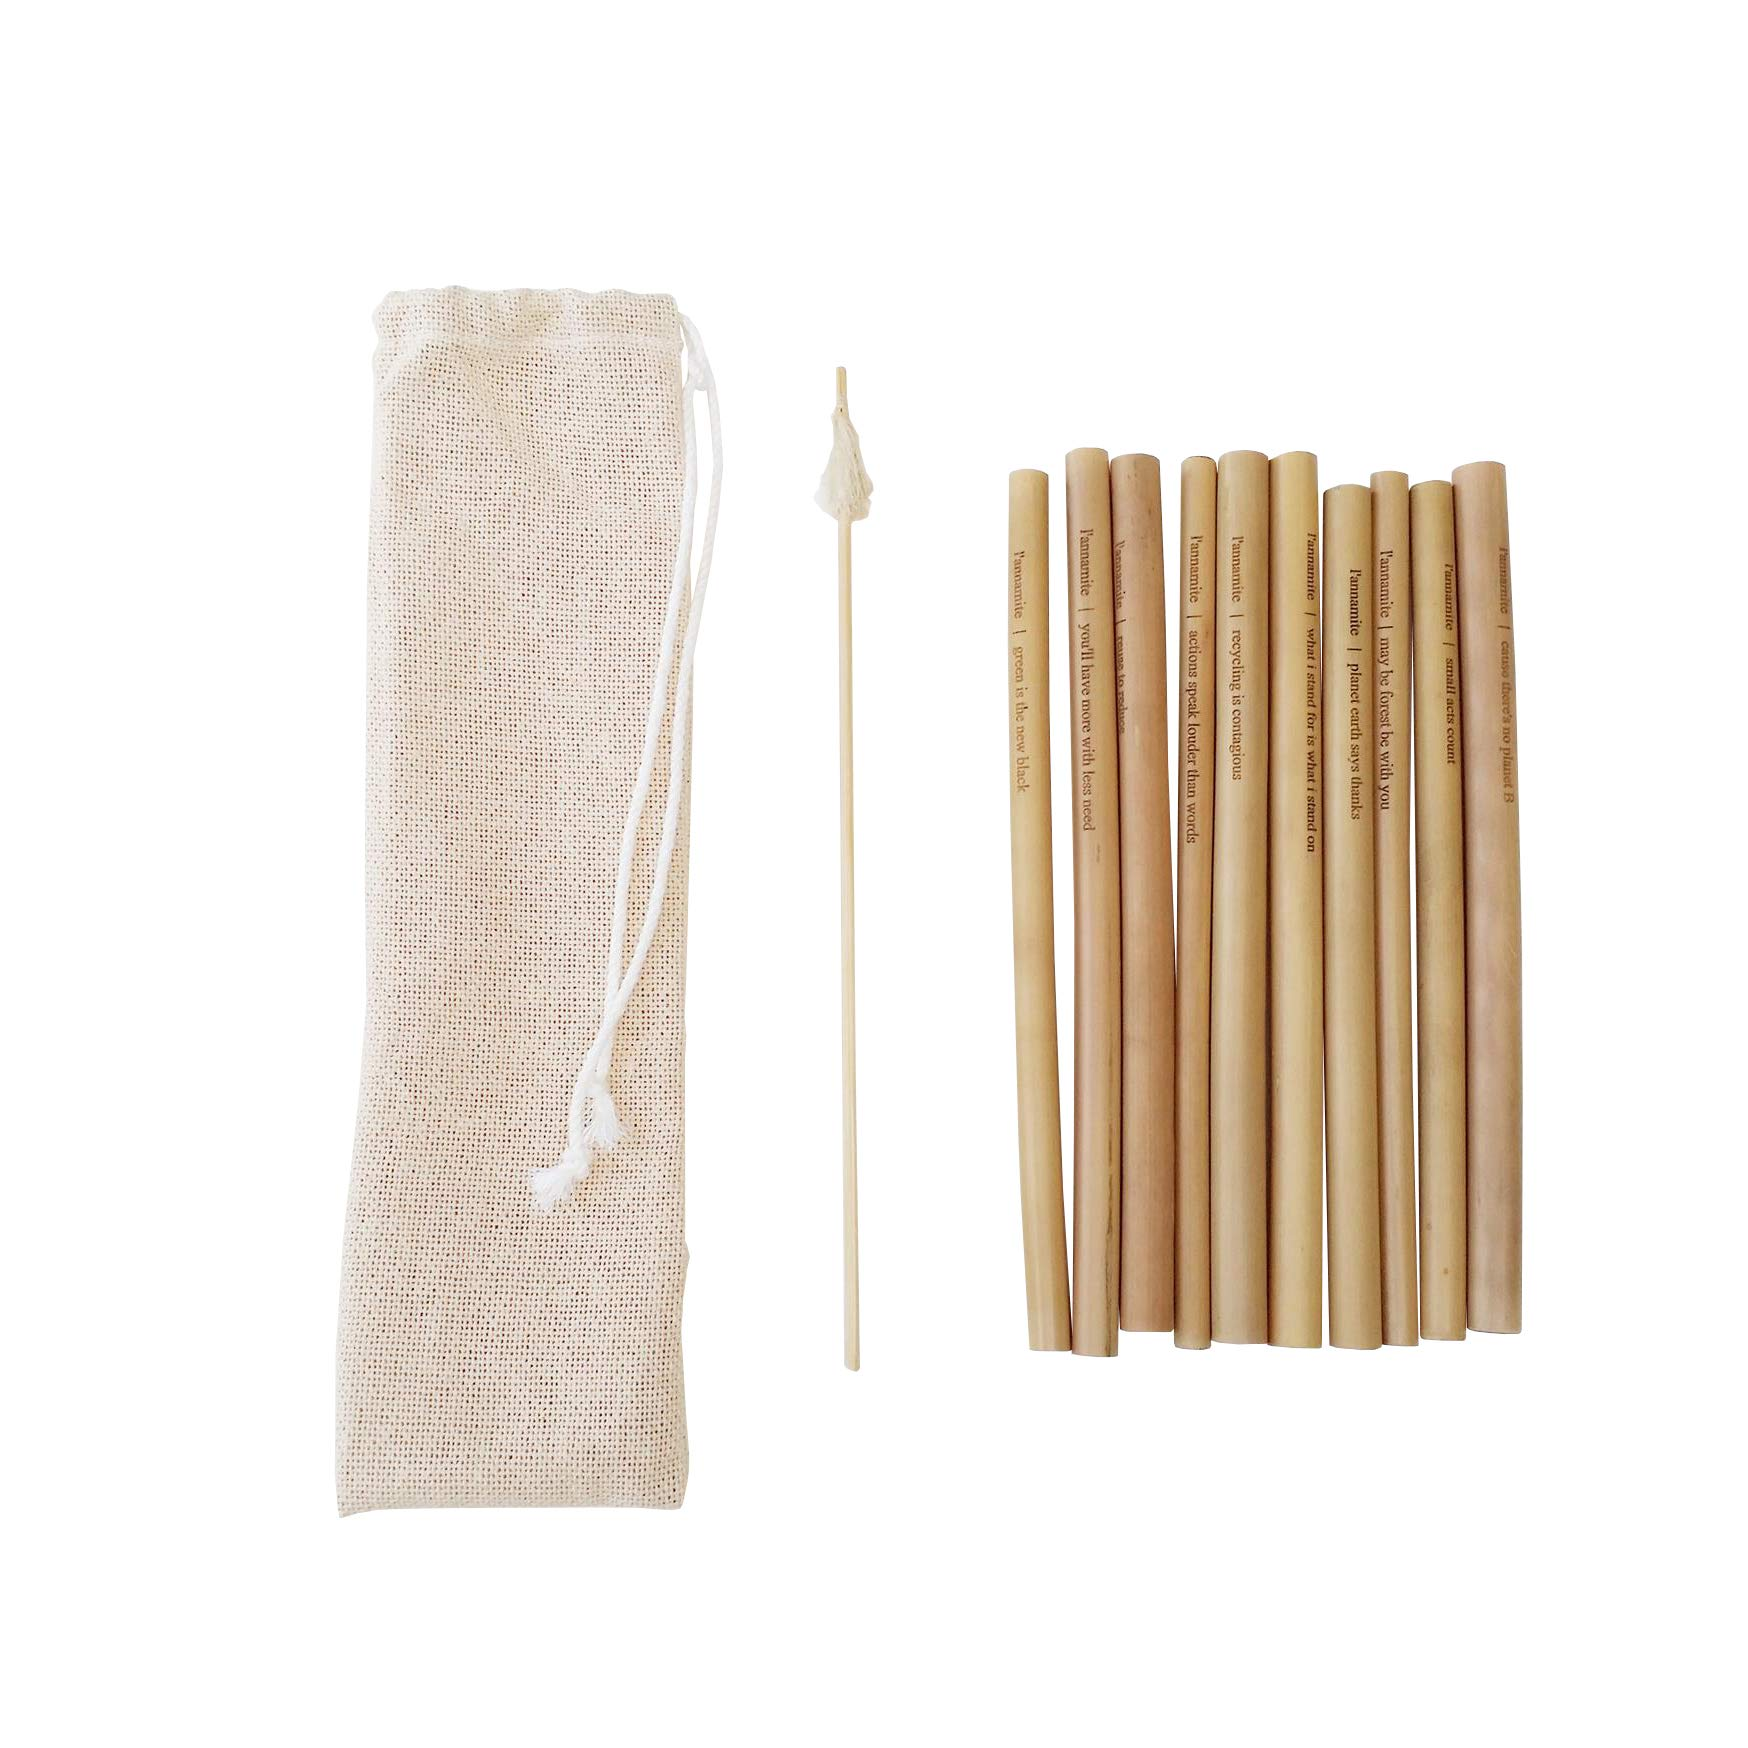 L'annamite Organic Bamboo Drinking Straws - with Quotes - Reusable – Hand-Crafted Natural Alternative to Plastic– Set of 10